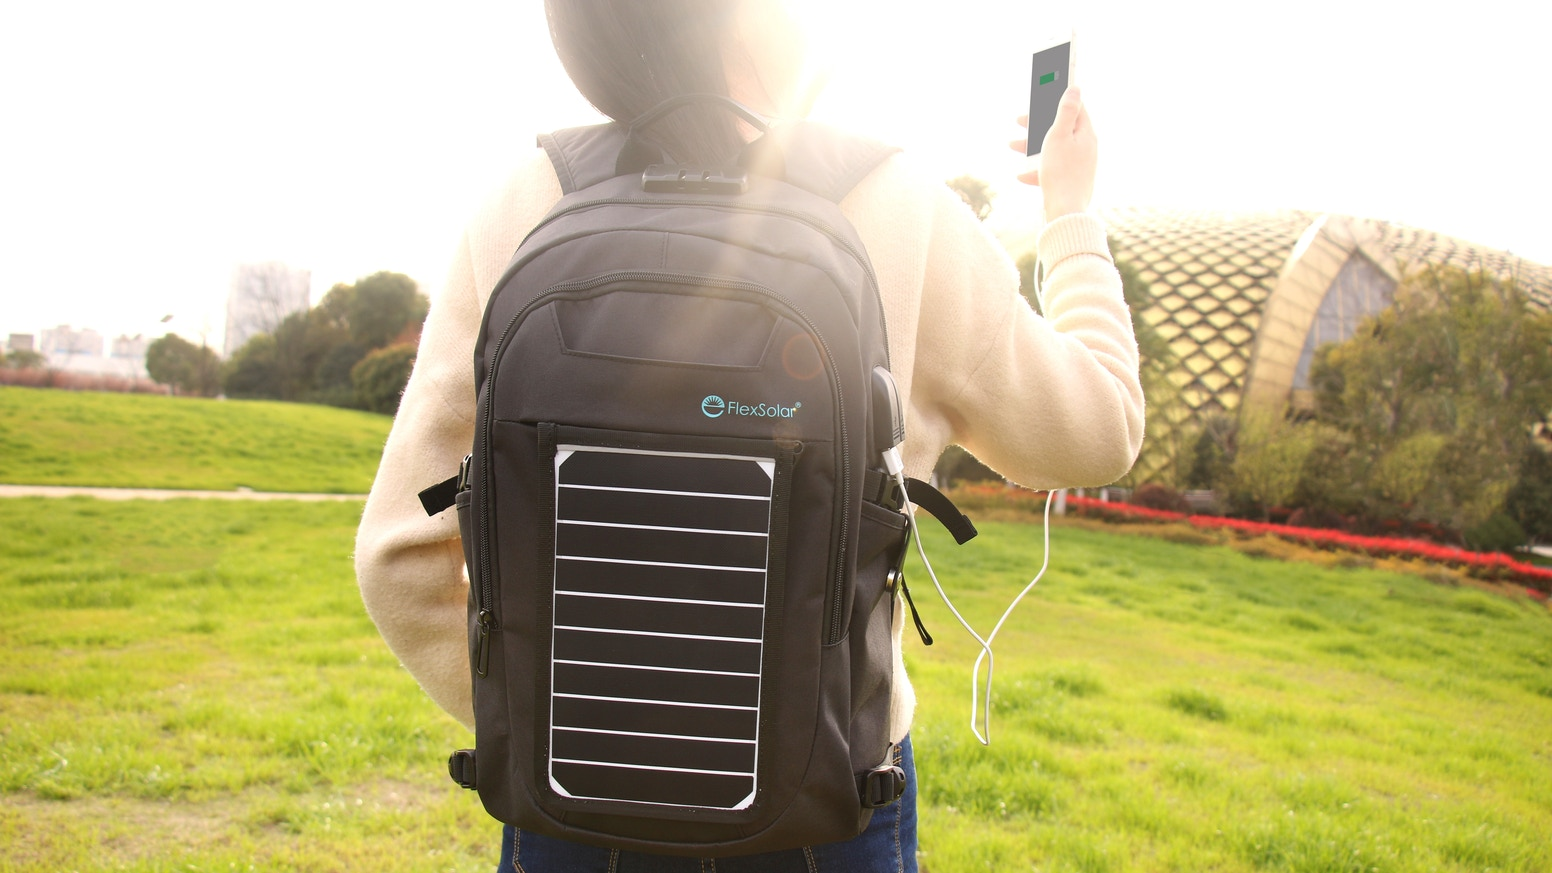 Solar backpack / Removable solar panel/Charge on the go /USB solar charger/ Go green/Camping/Hiking/Outdoor